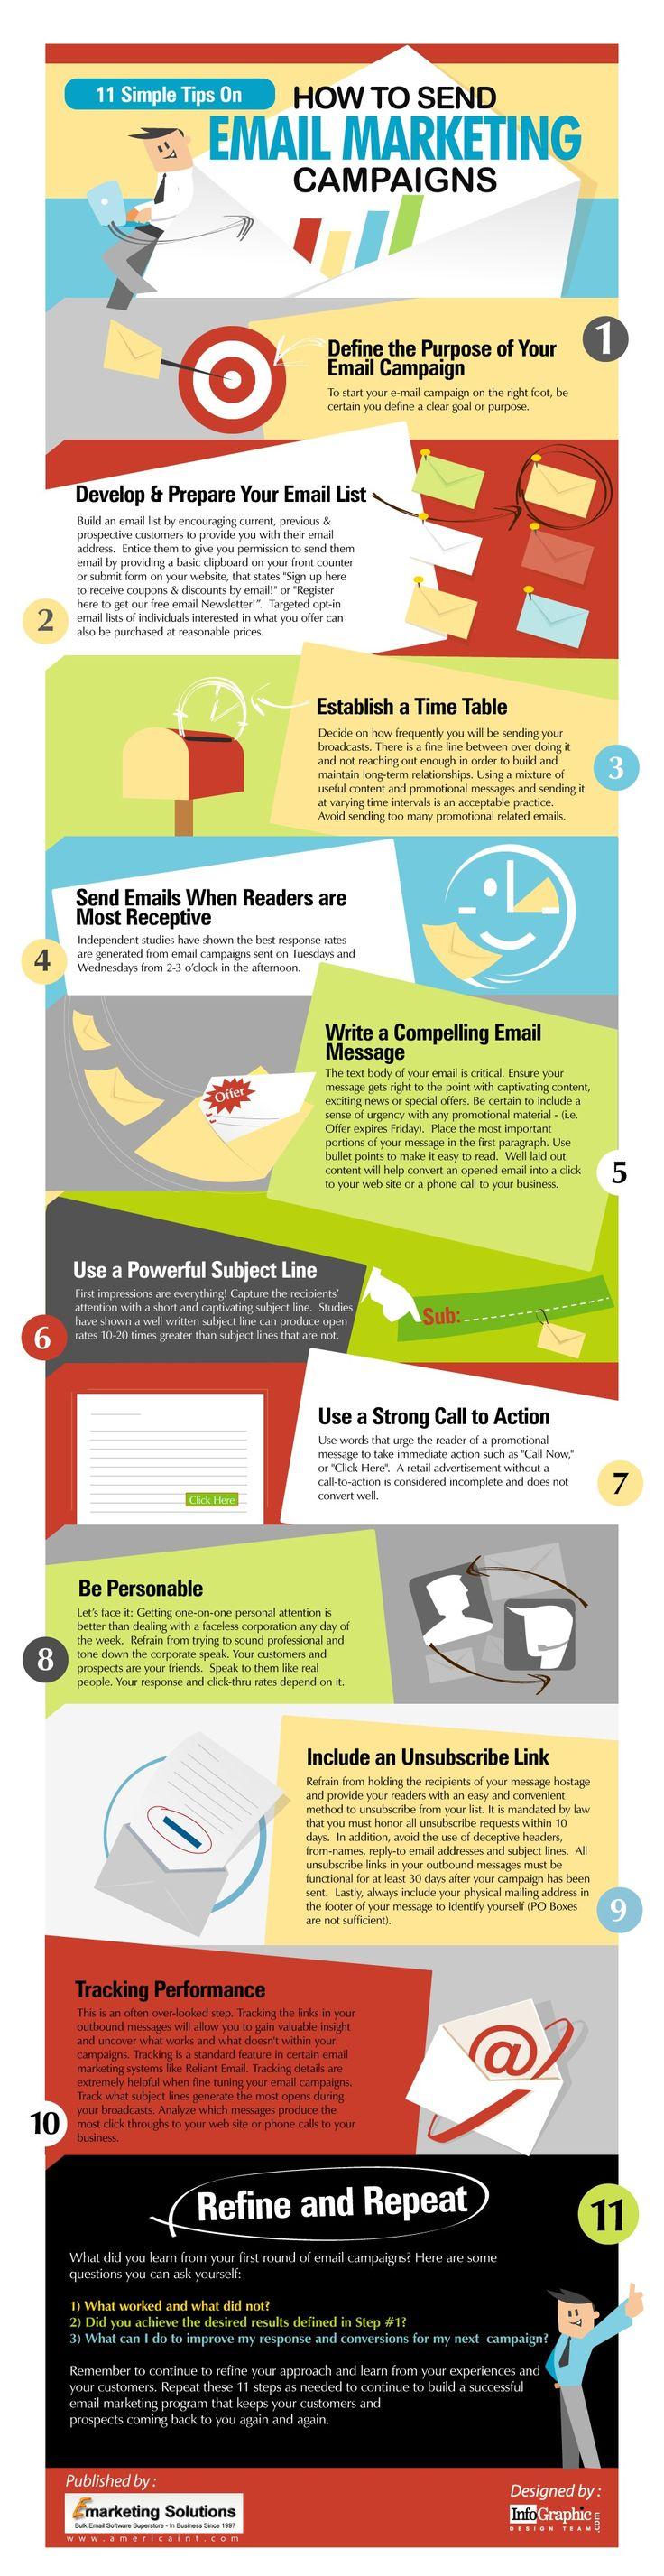 Best 25+ Email marketing services ideas on Pinterest